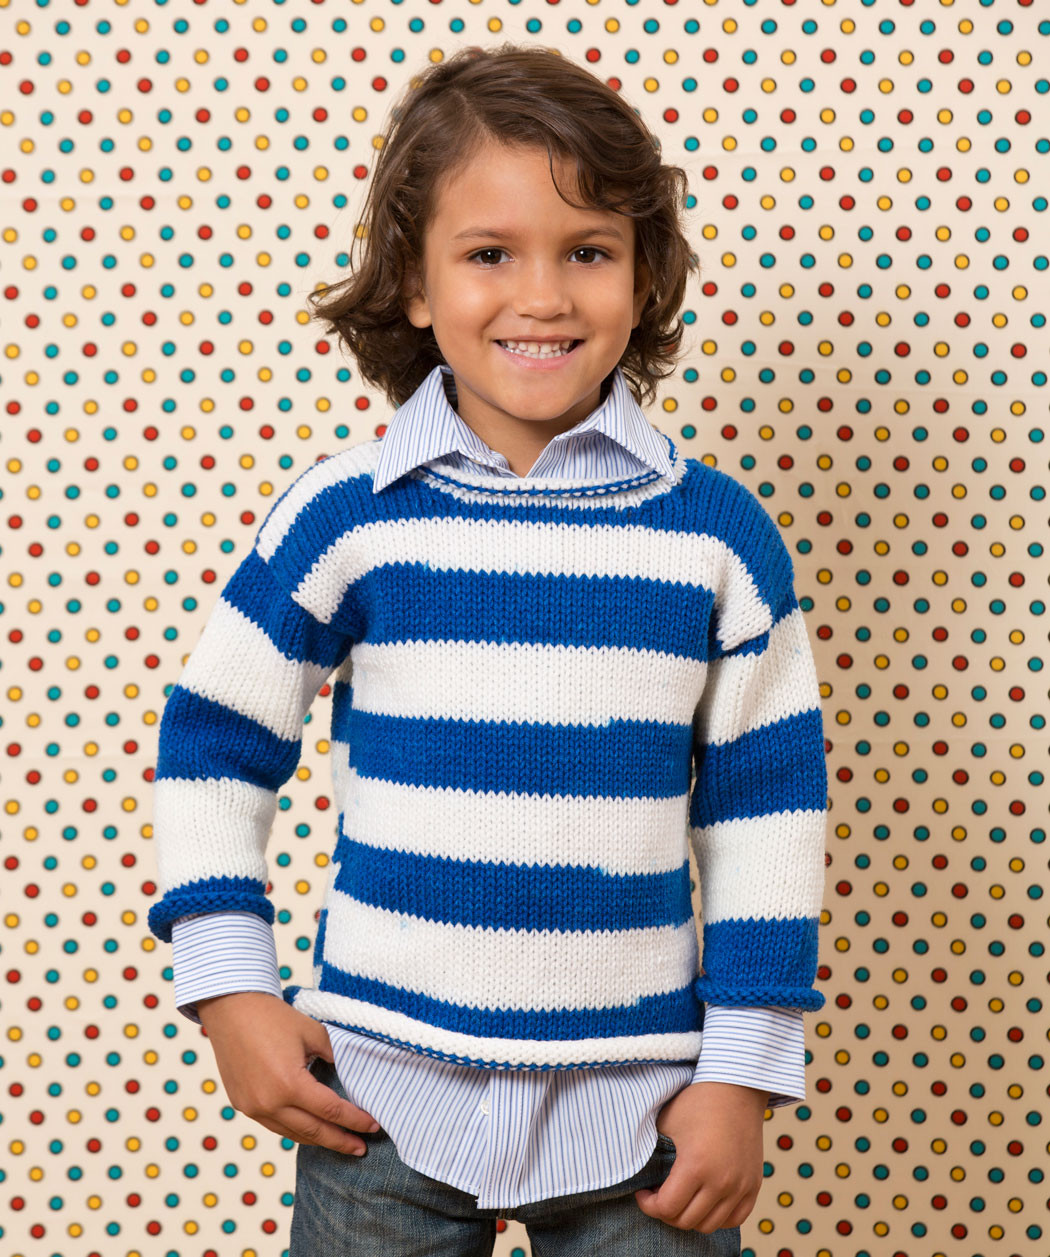 Lovely 57 Knit and Crochet Patterns for Boys Boy Sweater Knitting Pattern Of Incredible 49 Ideas Boy Sweater Knitting Pattern